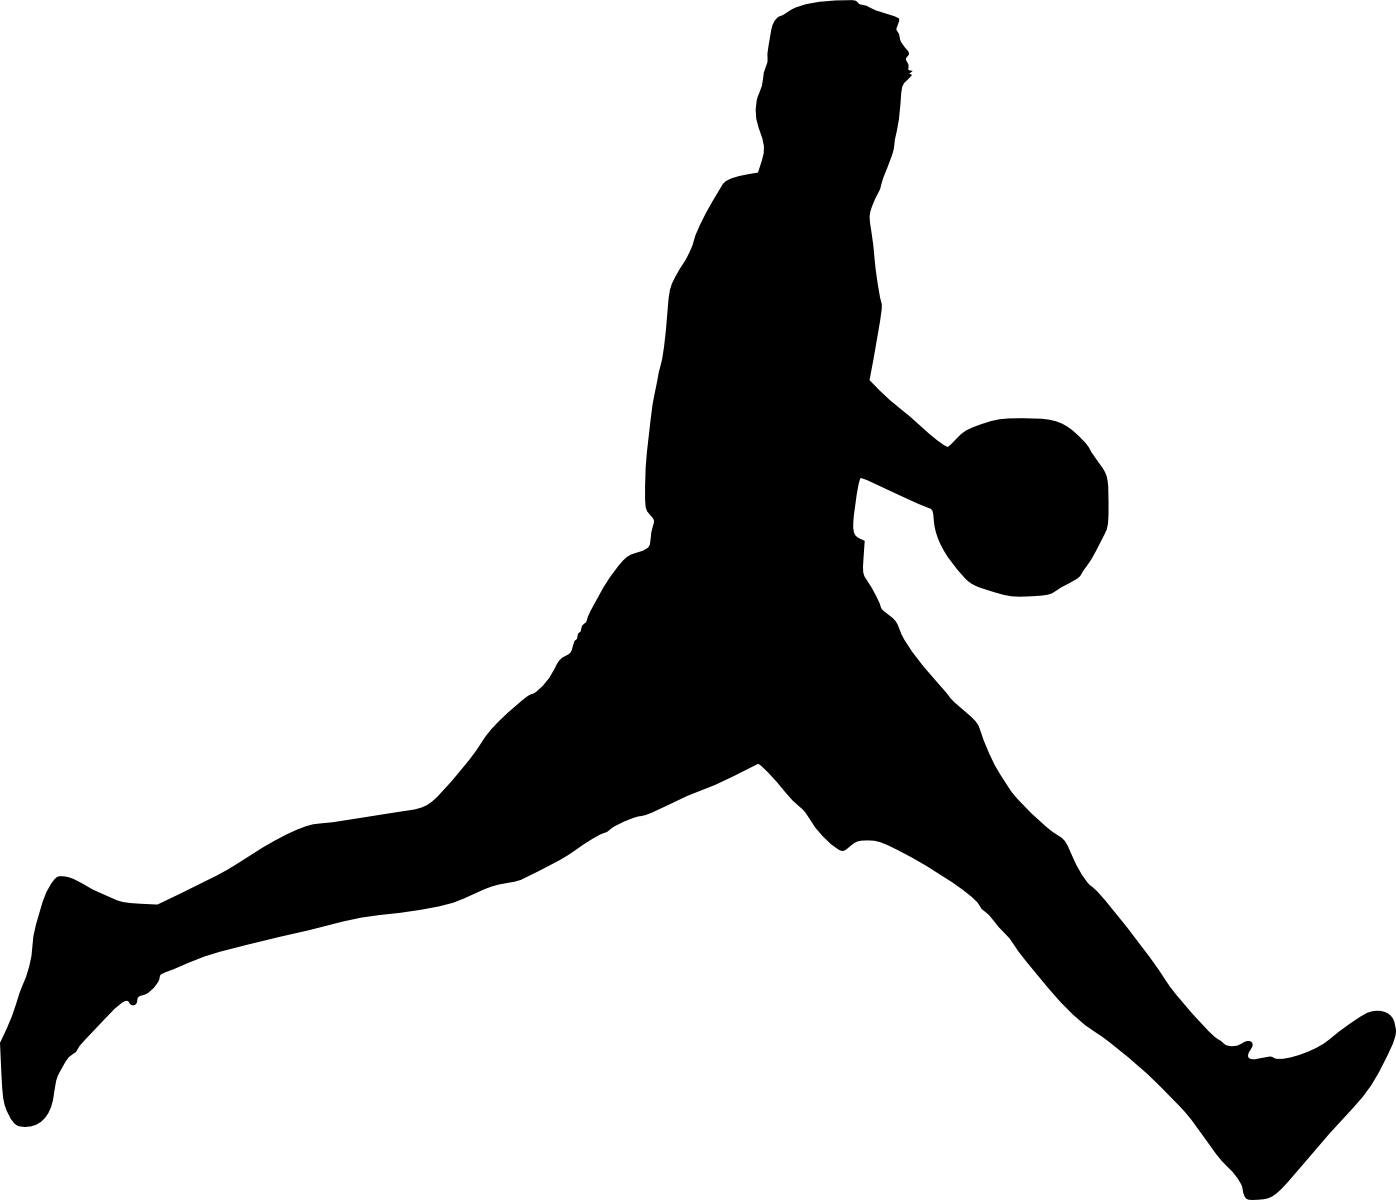 Girl basketball player silhouette png. Of a at getdrawings